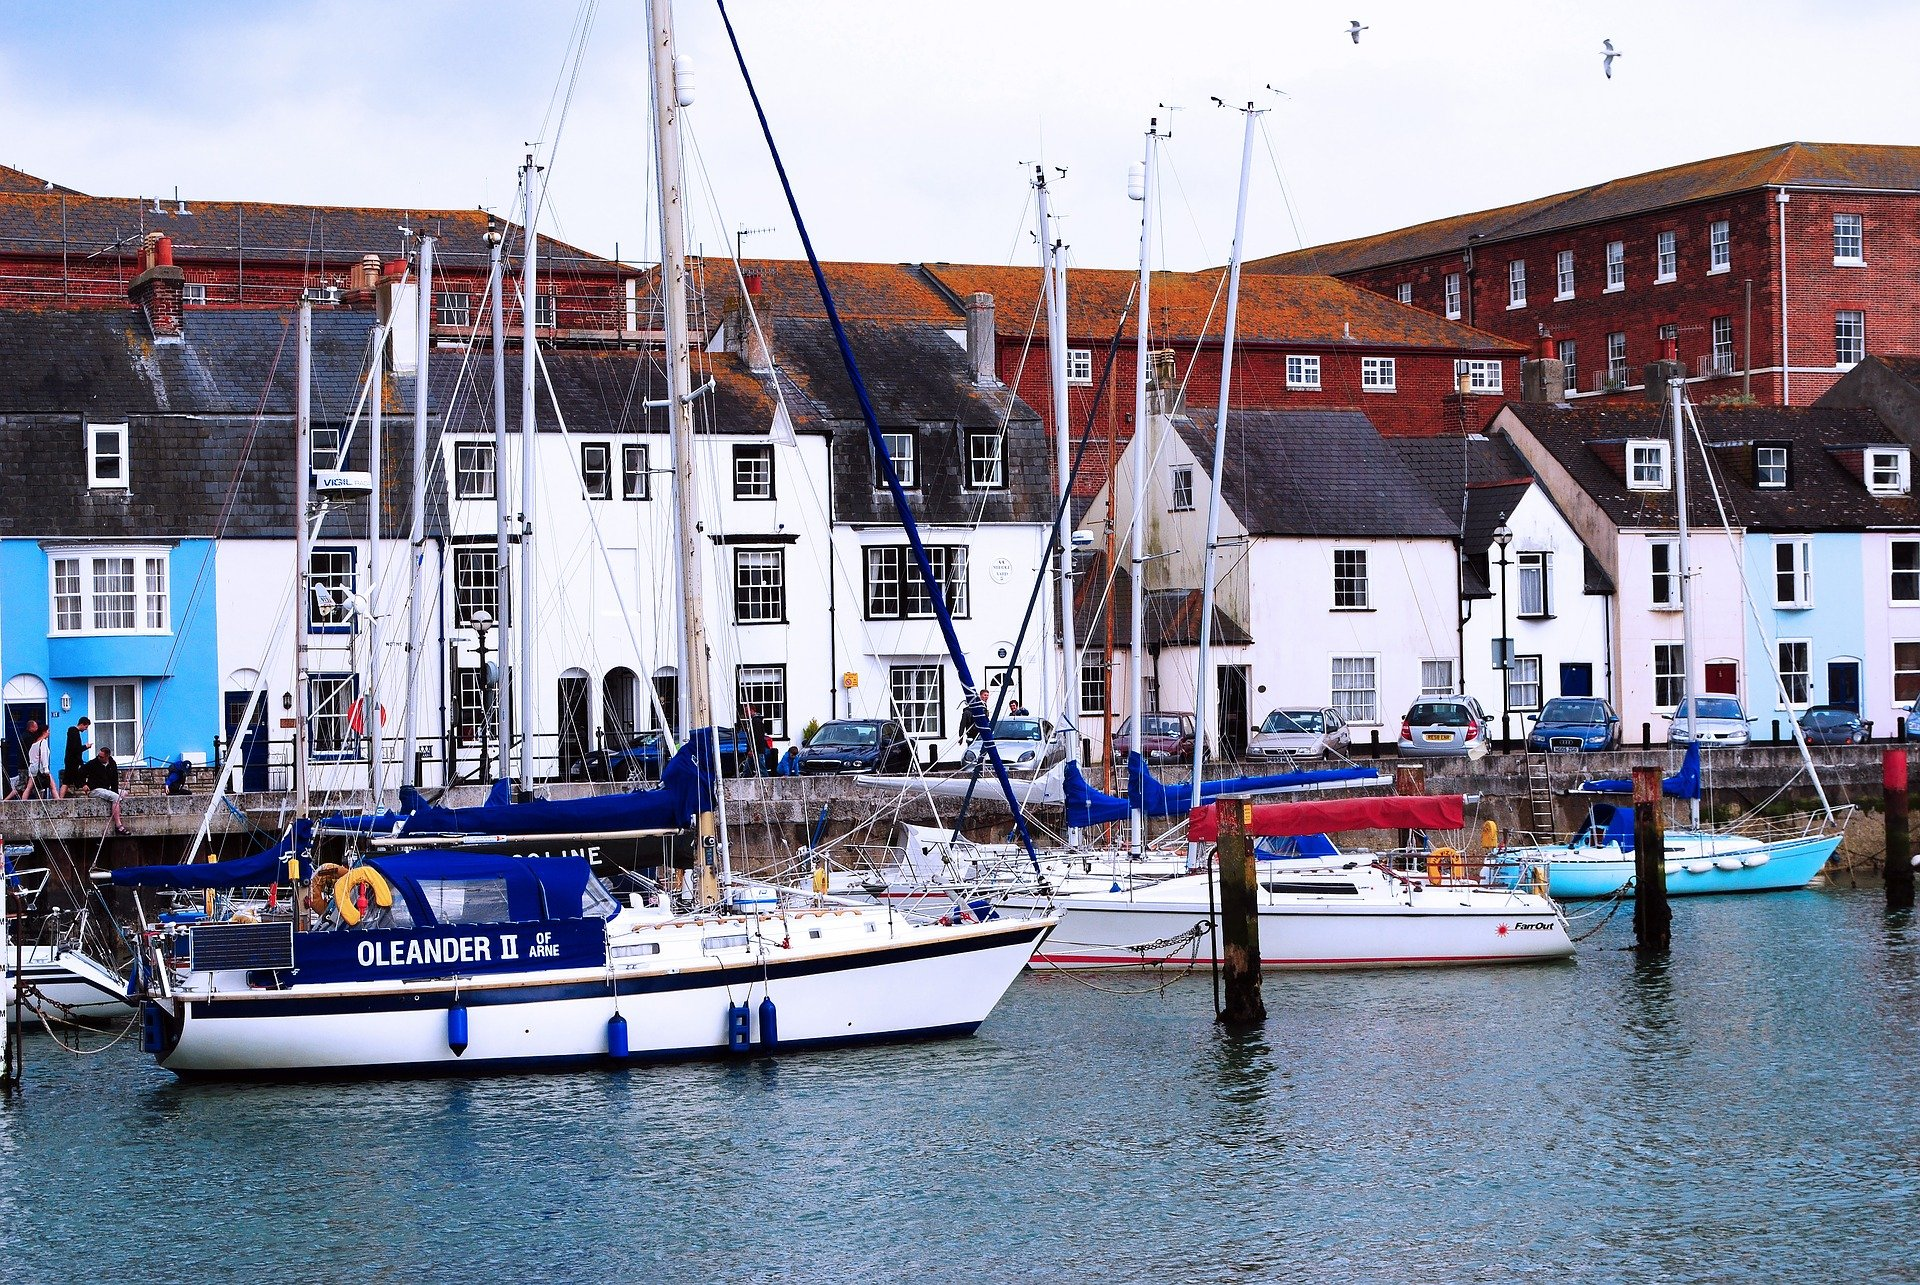 Boats at Weymouth Quayside, Dorset